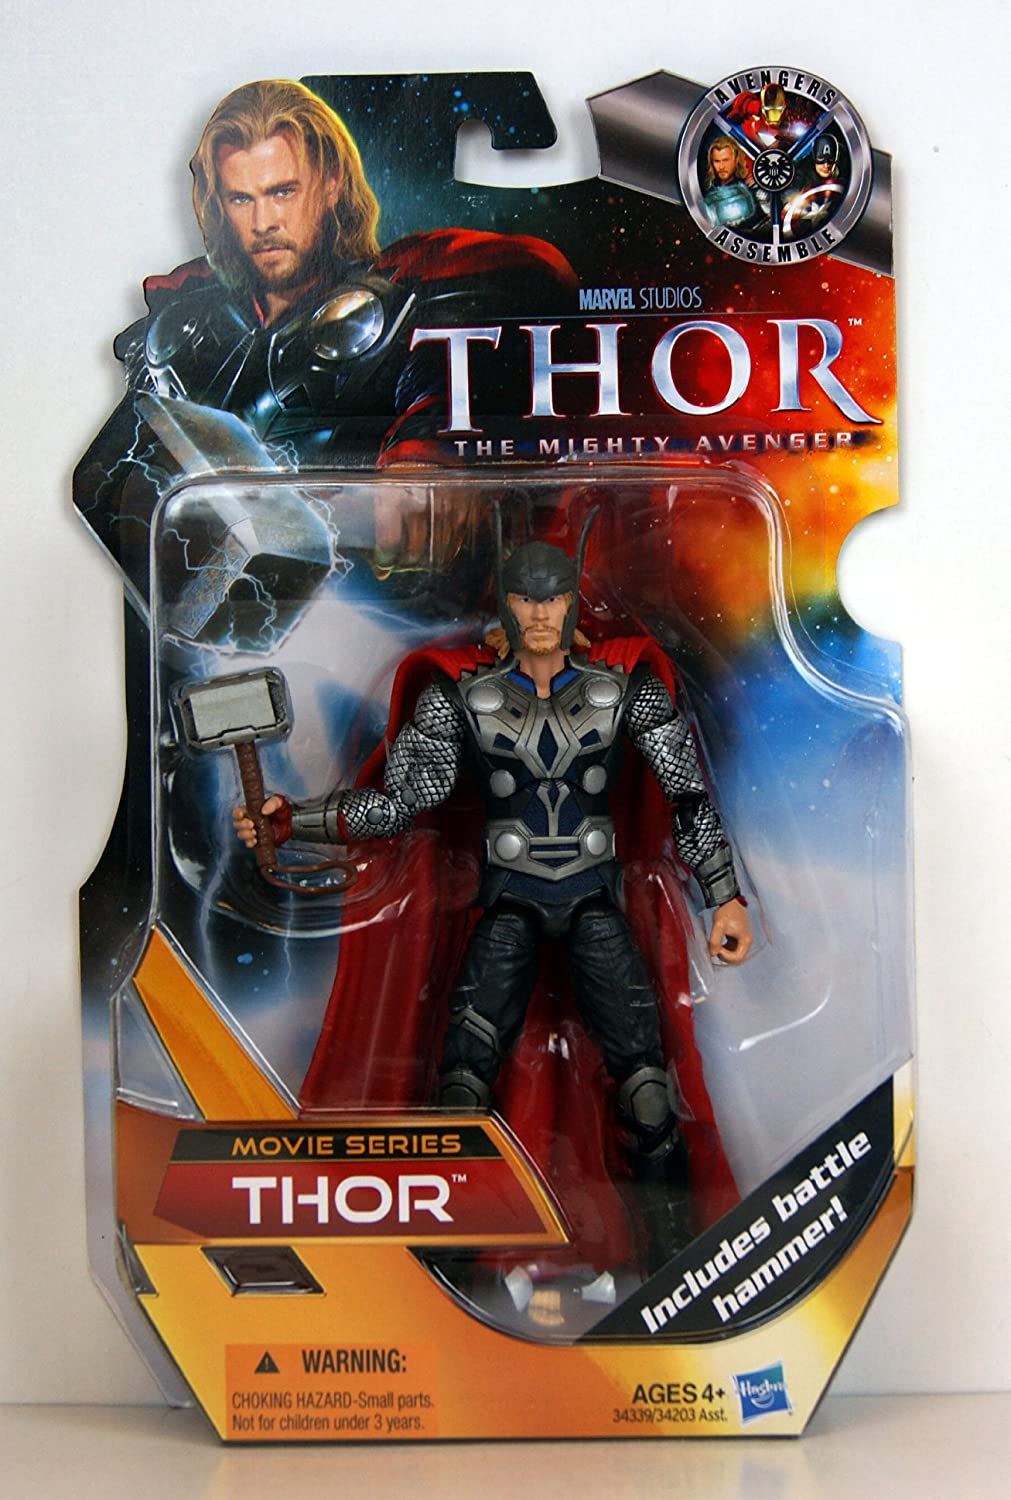 Amazon Com The Mighty Avenger Movie Series Thor Exclusive Action Figure Movie Series Toys Games